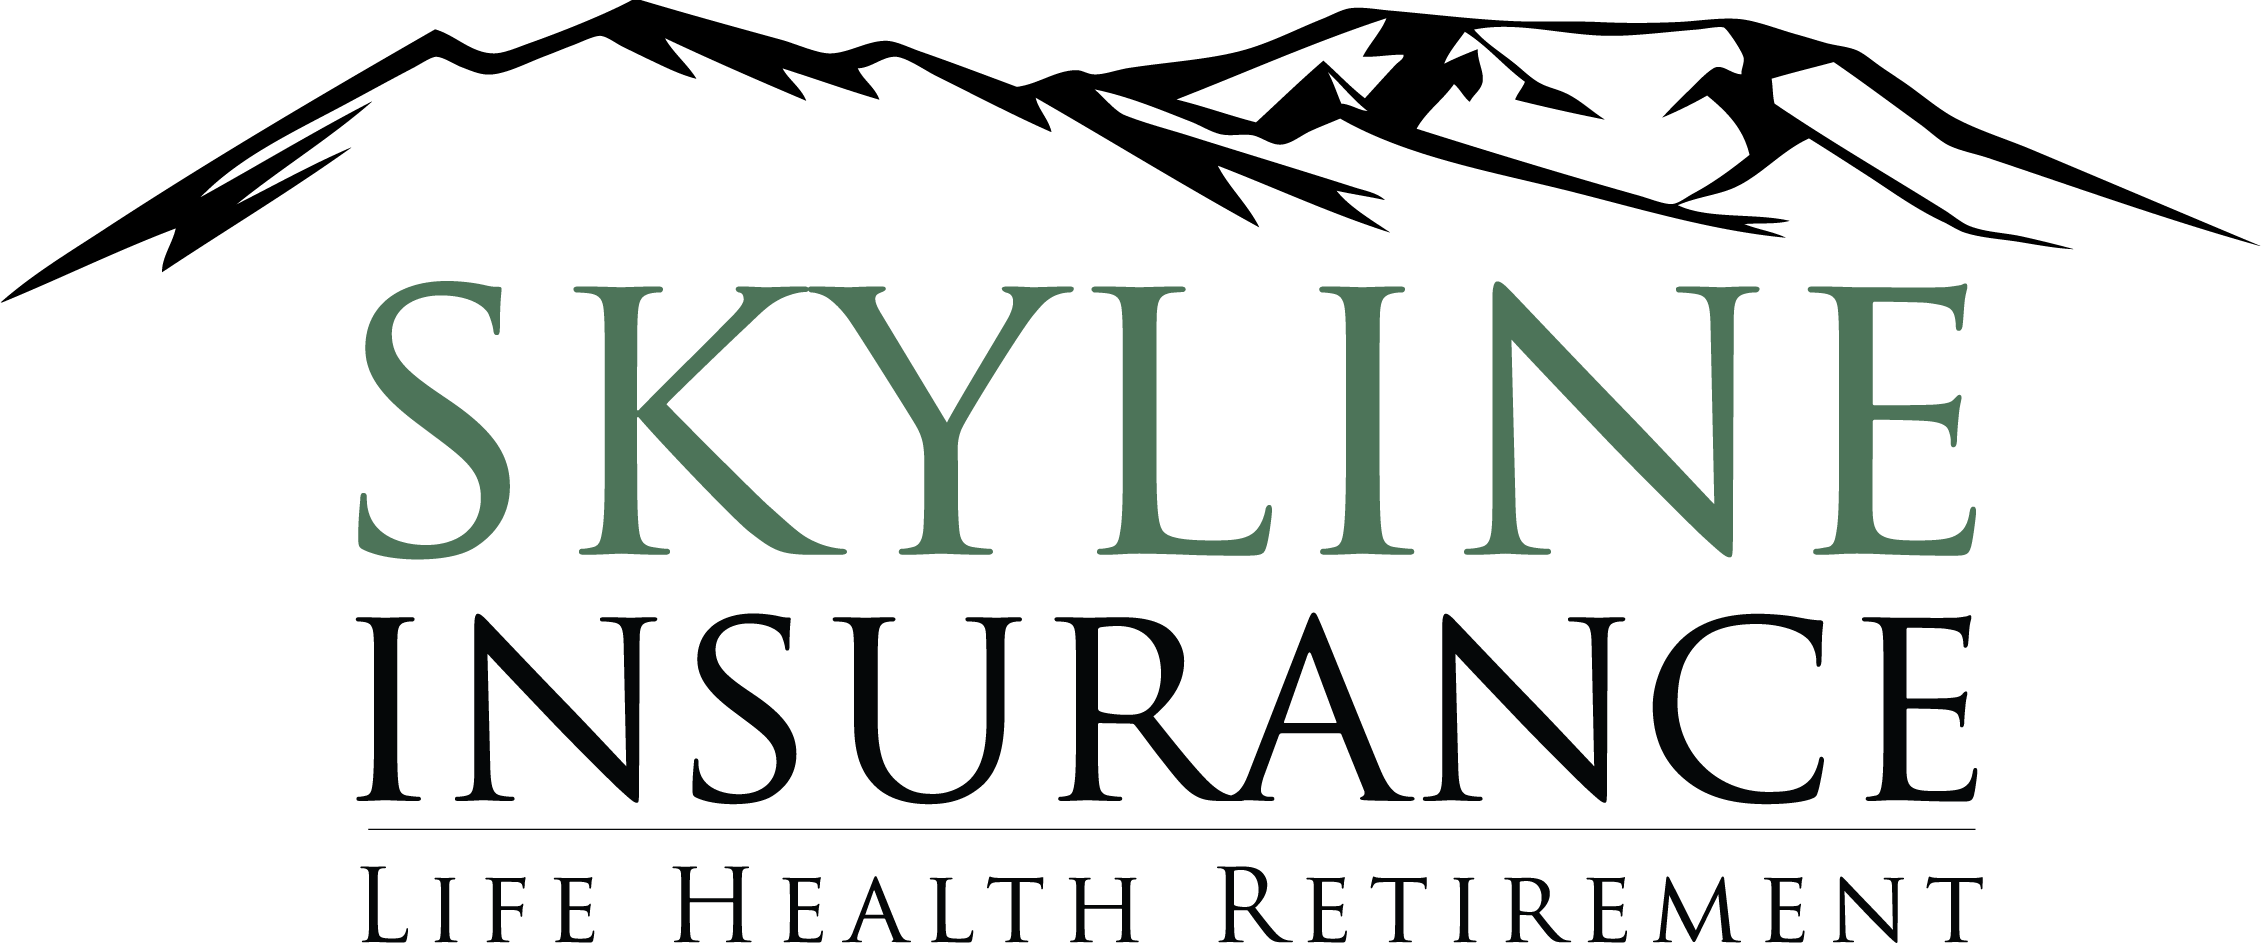 16.02.08_skyline_insurance_logo_color__life_health_retirement_